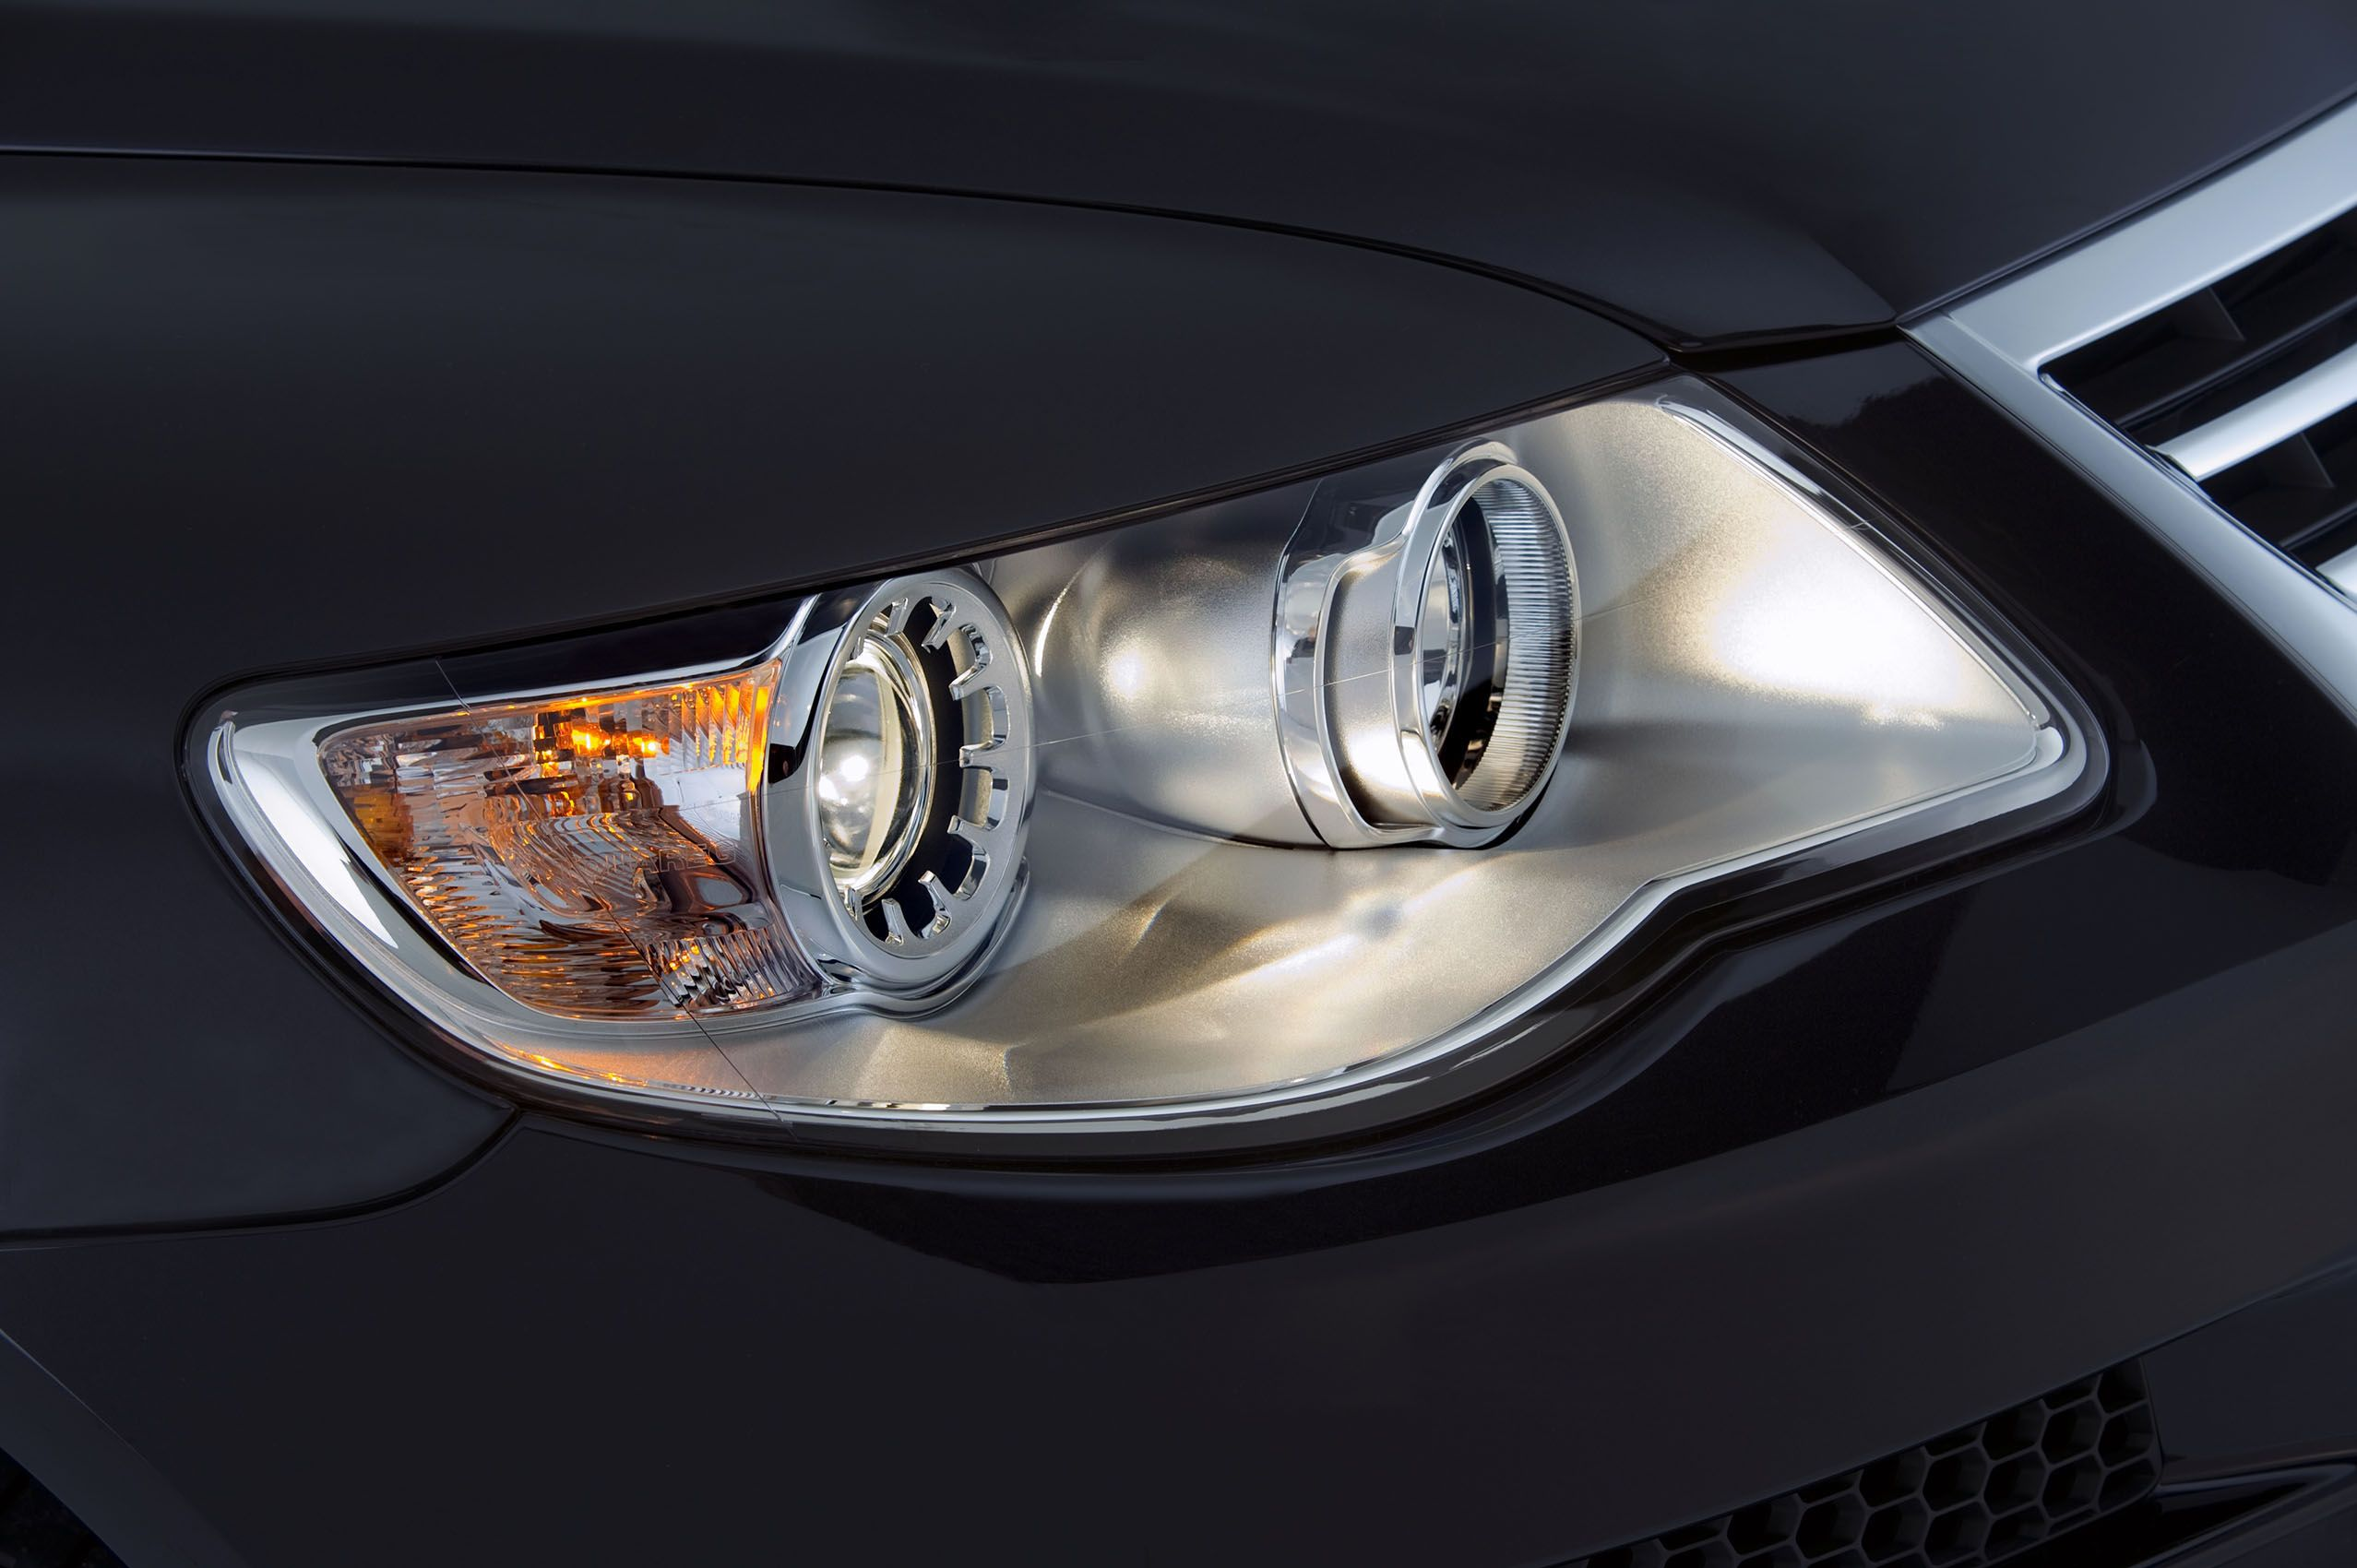 VW Headlight